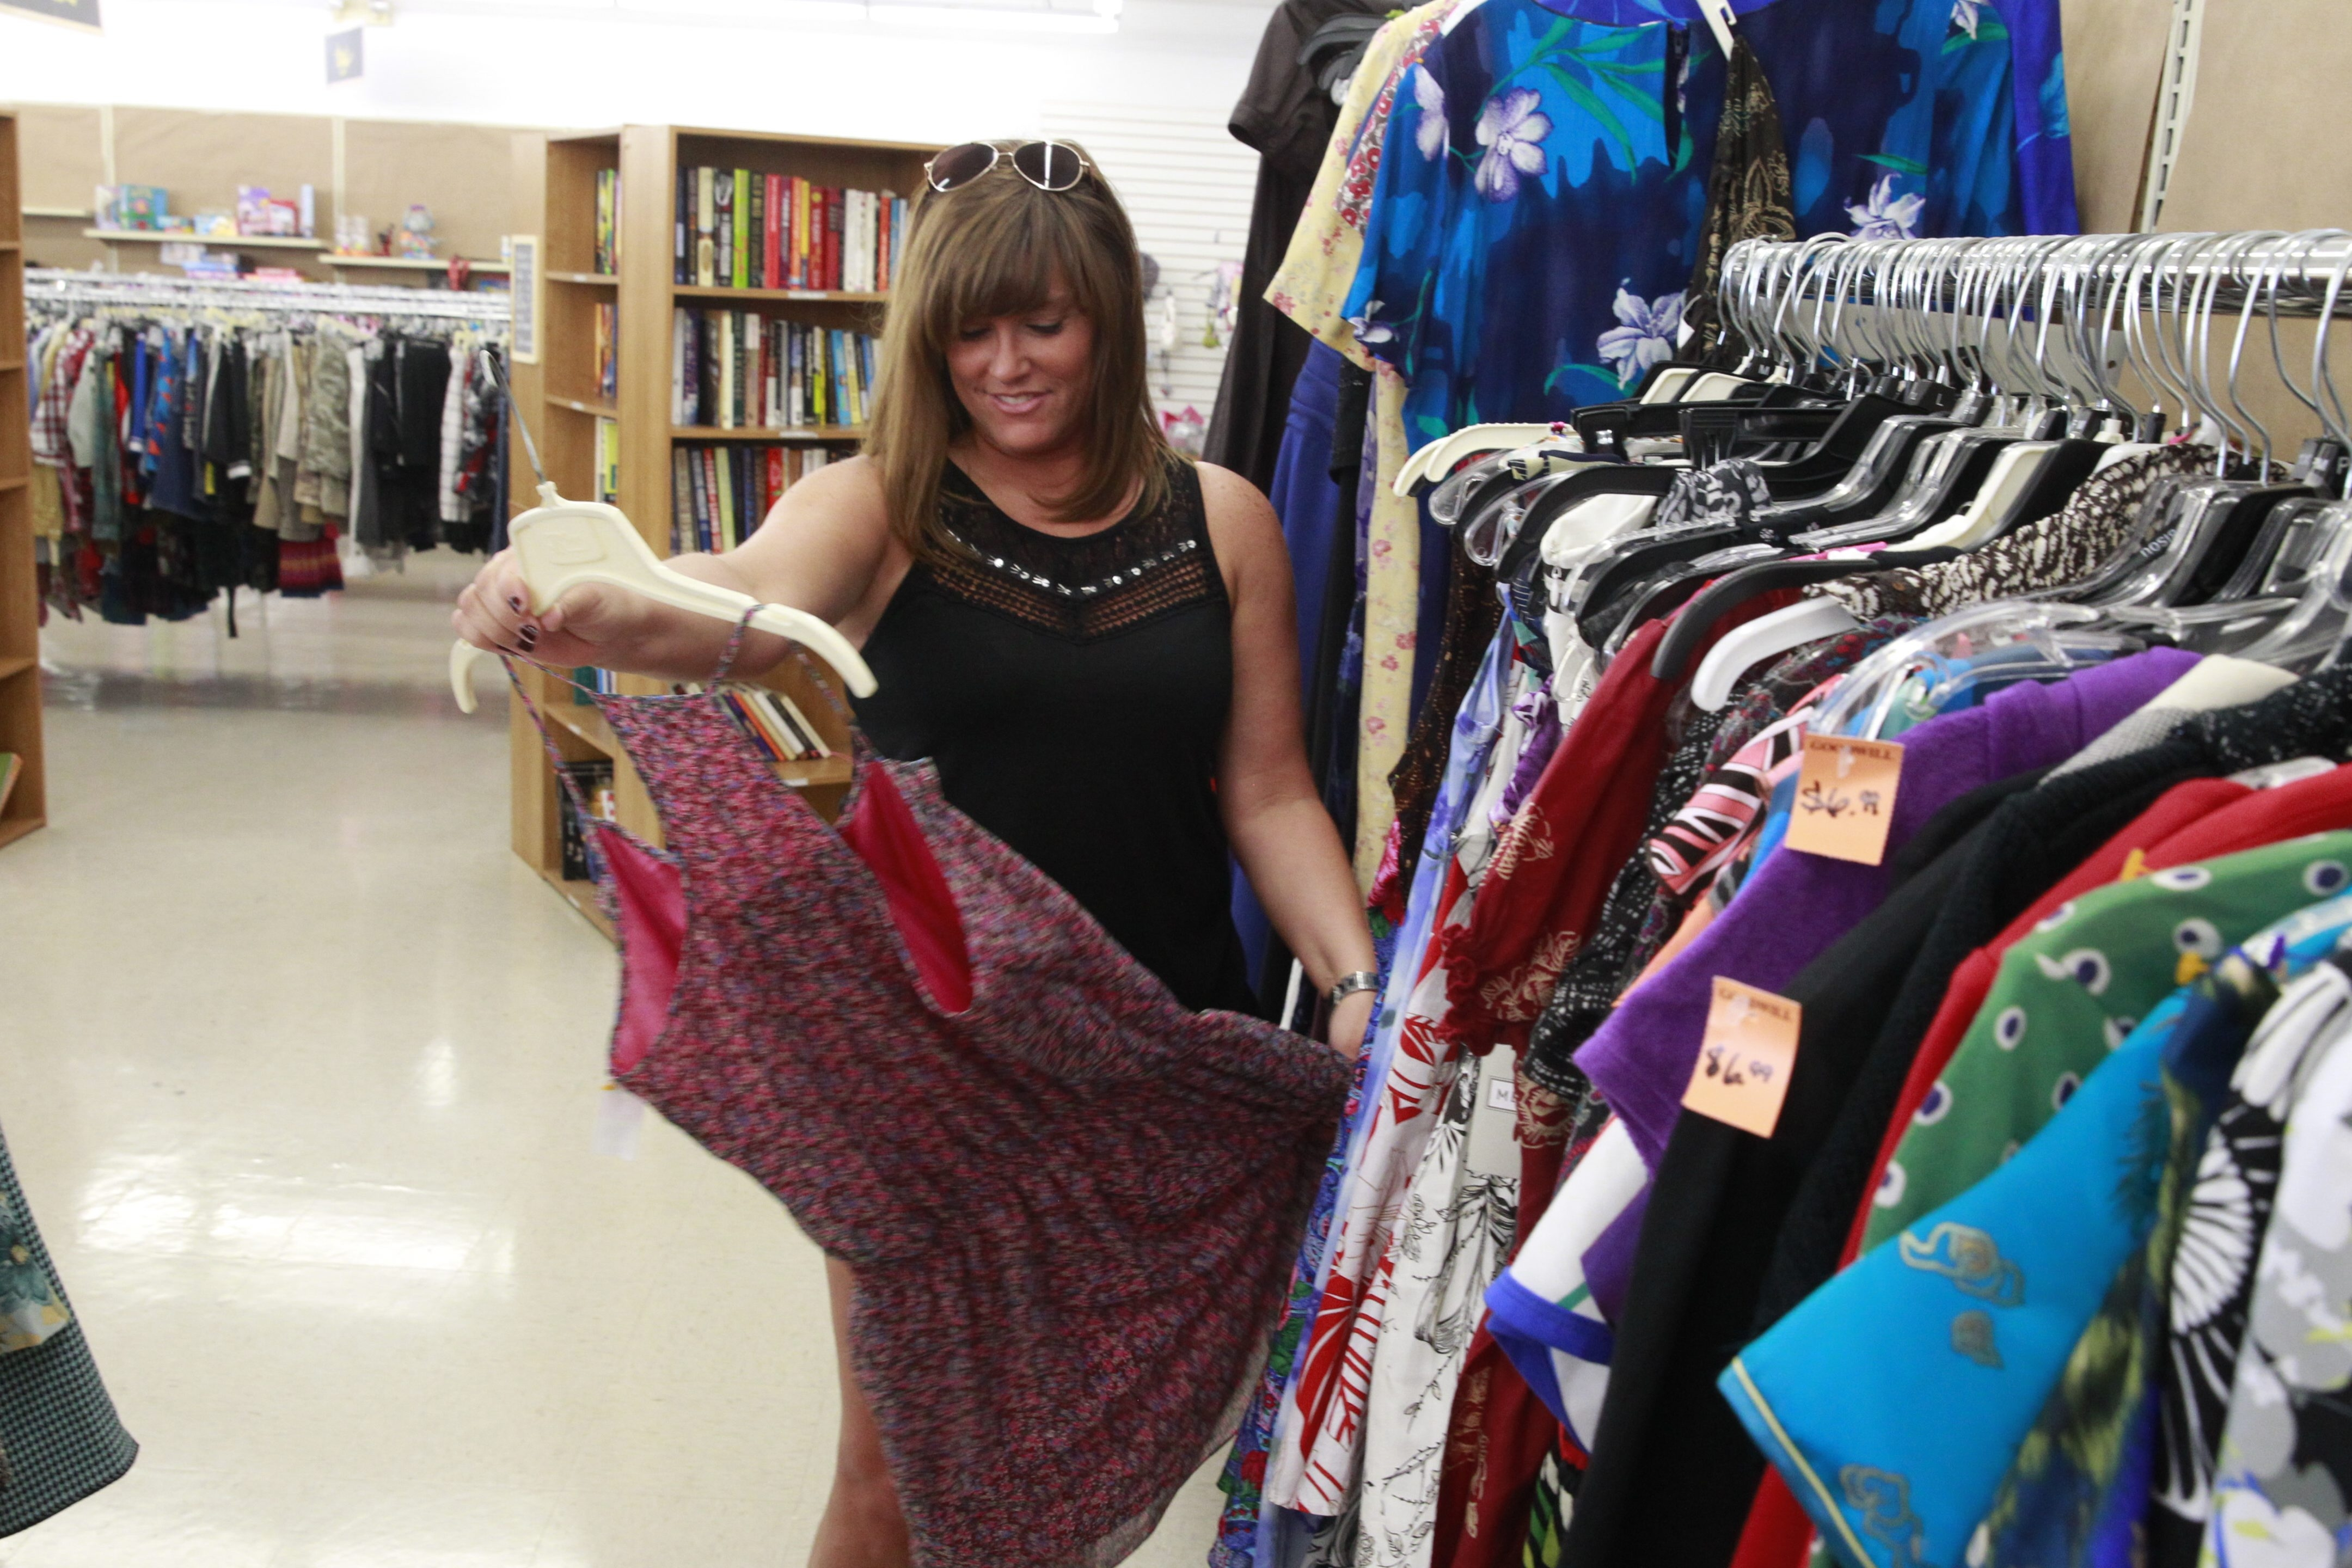 Heather Eminger looks at a dress as she shops at Goodwill which re-opened its newly remodeled Tonawanda store, which reflects a broader effort by thrift stores to engage new customers by offering a better shopping experience in Town of Tonawanda. (John Hickey/Buffalo News)